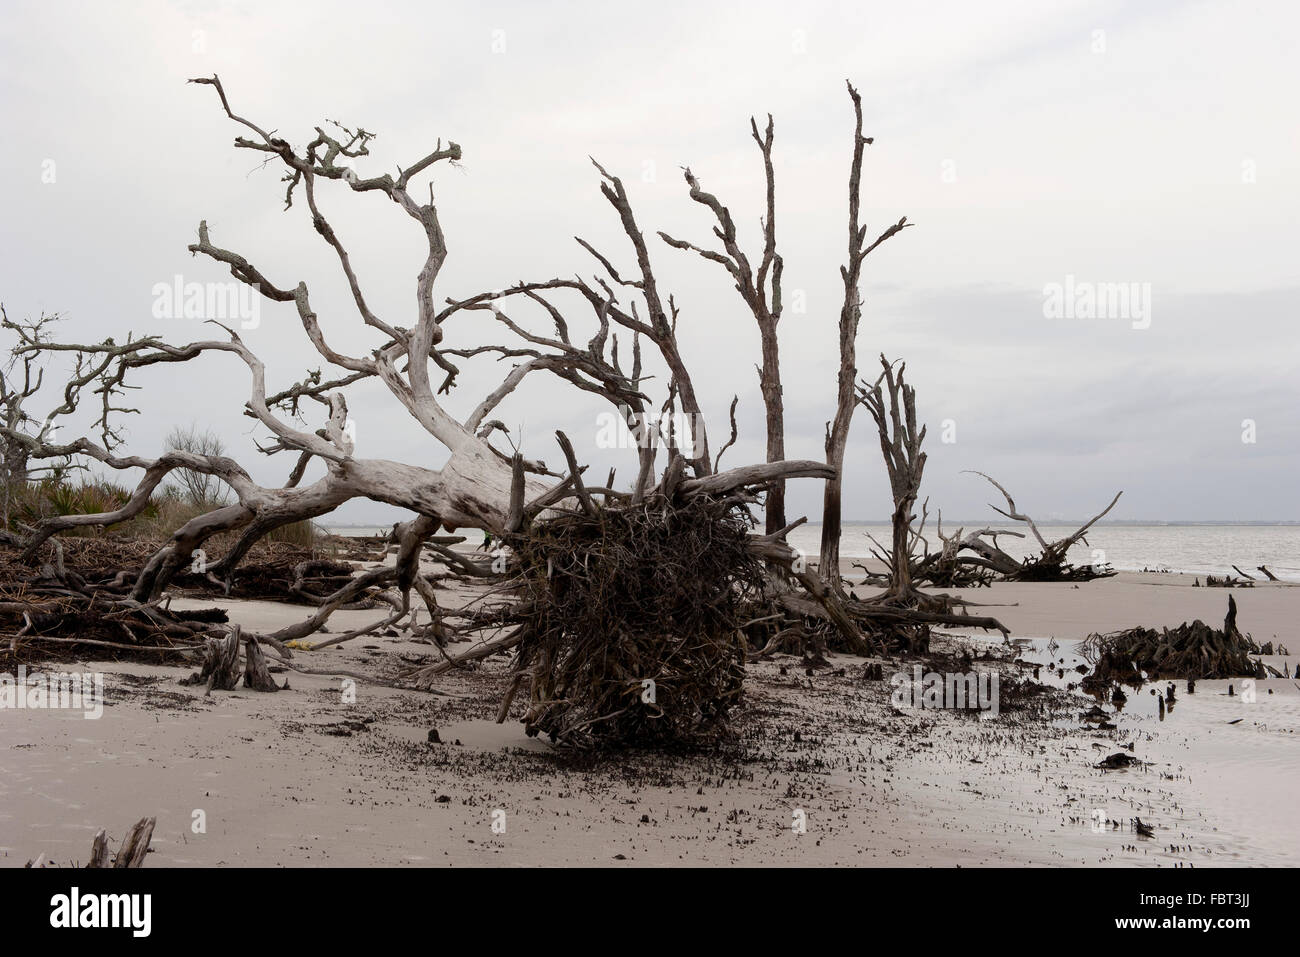 Dead, uprooted trees on beach, Jekyll Island, Georgia, USA - Stock Image